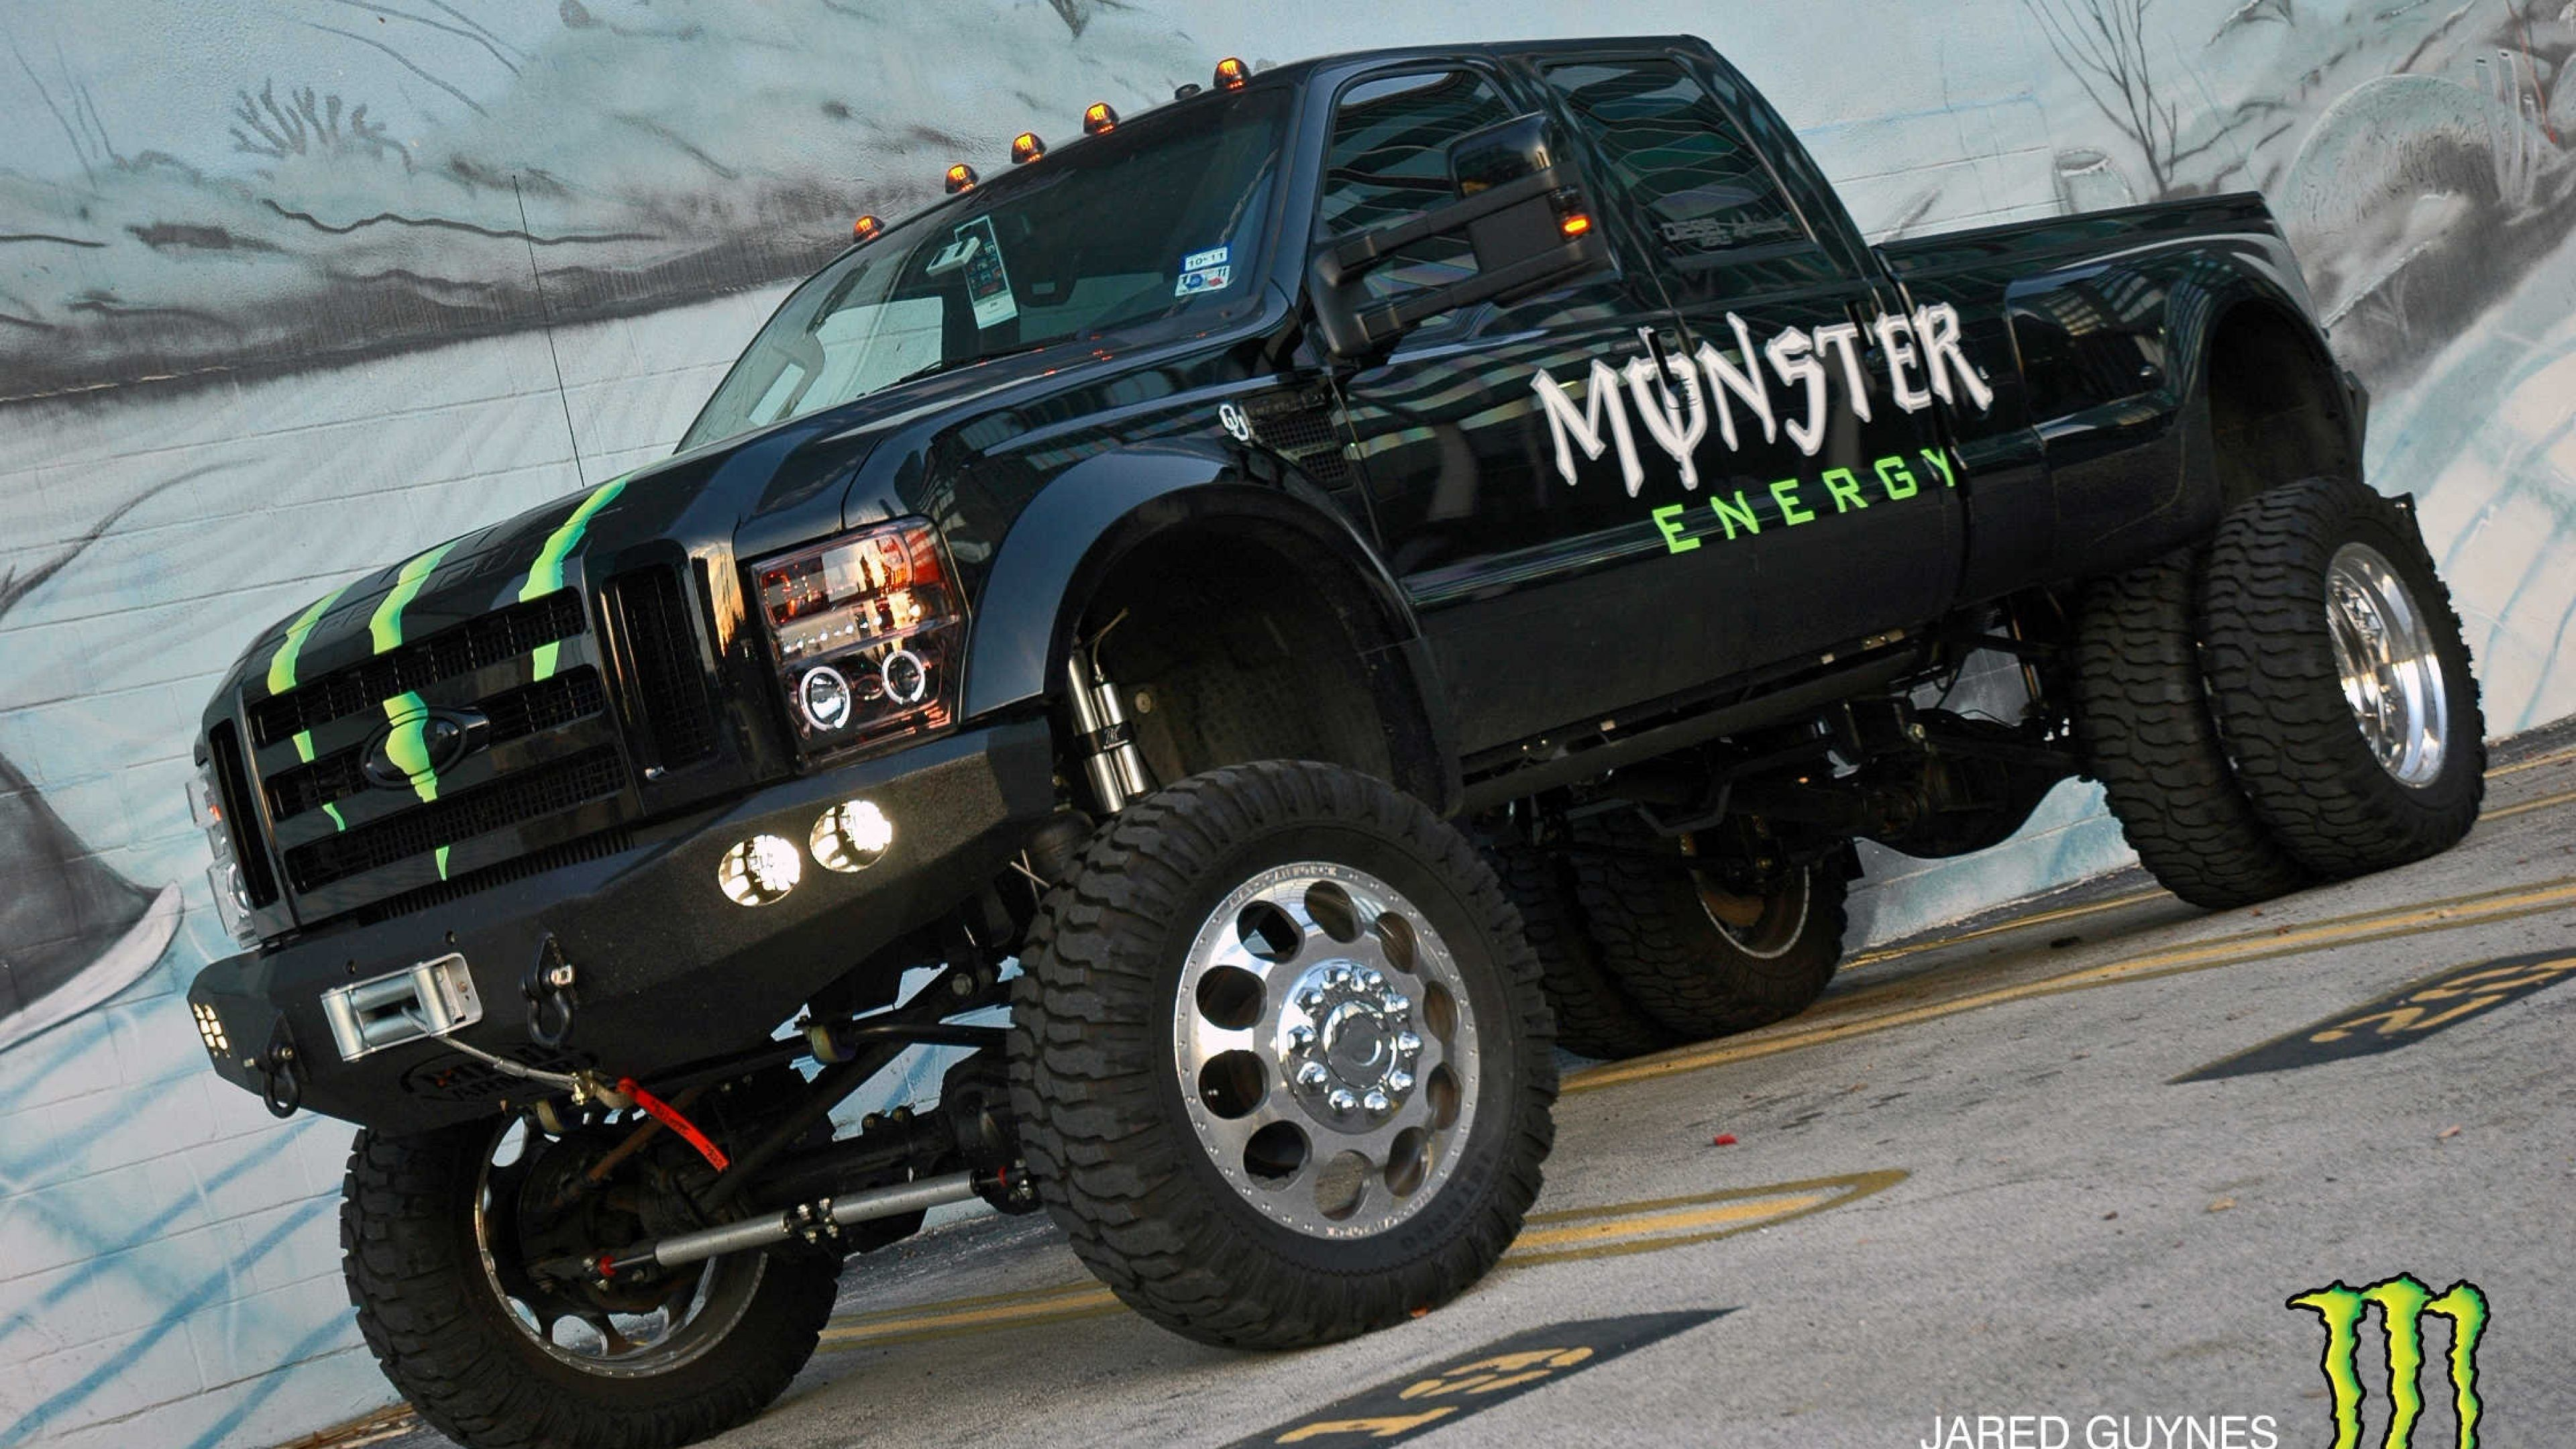 3840x2160 Wallpaper Monster Energy Truck Hd Wallpapers Monster Energy Trucks Monster Trucks